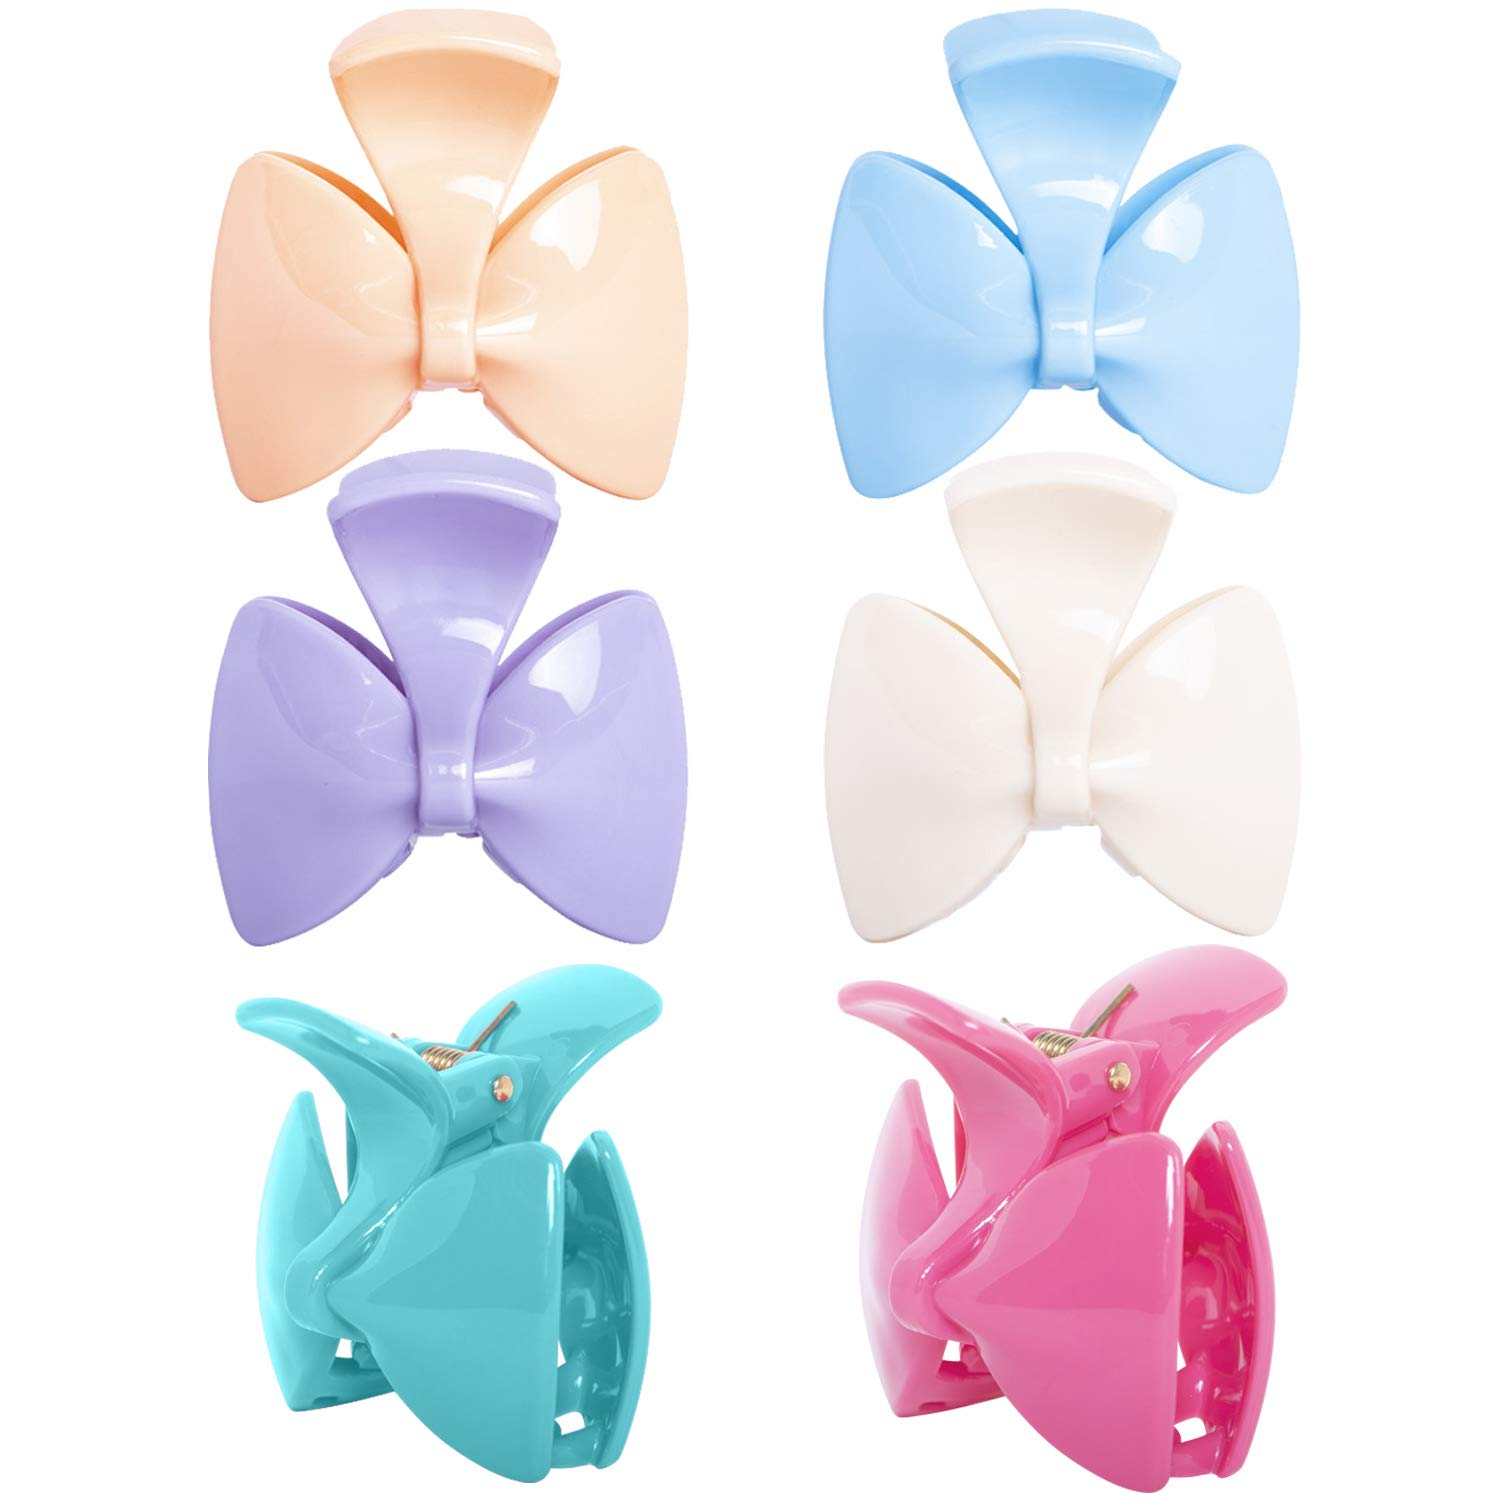 RC ROCHE ORNAMENT 6 Pcs Womens Cute Ribbon Bow Tie Jaw Claw Clamp Clutcher Inner Teeth Styling Sectioning Simple Fashion Beauty Accessory Multicolor Hair Clip, Medium Pastel Multicolor